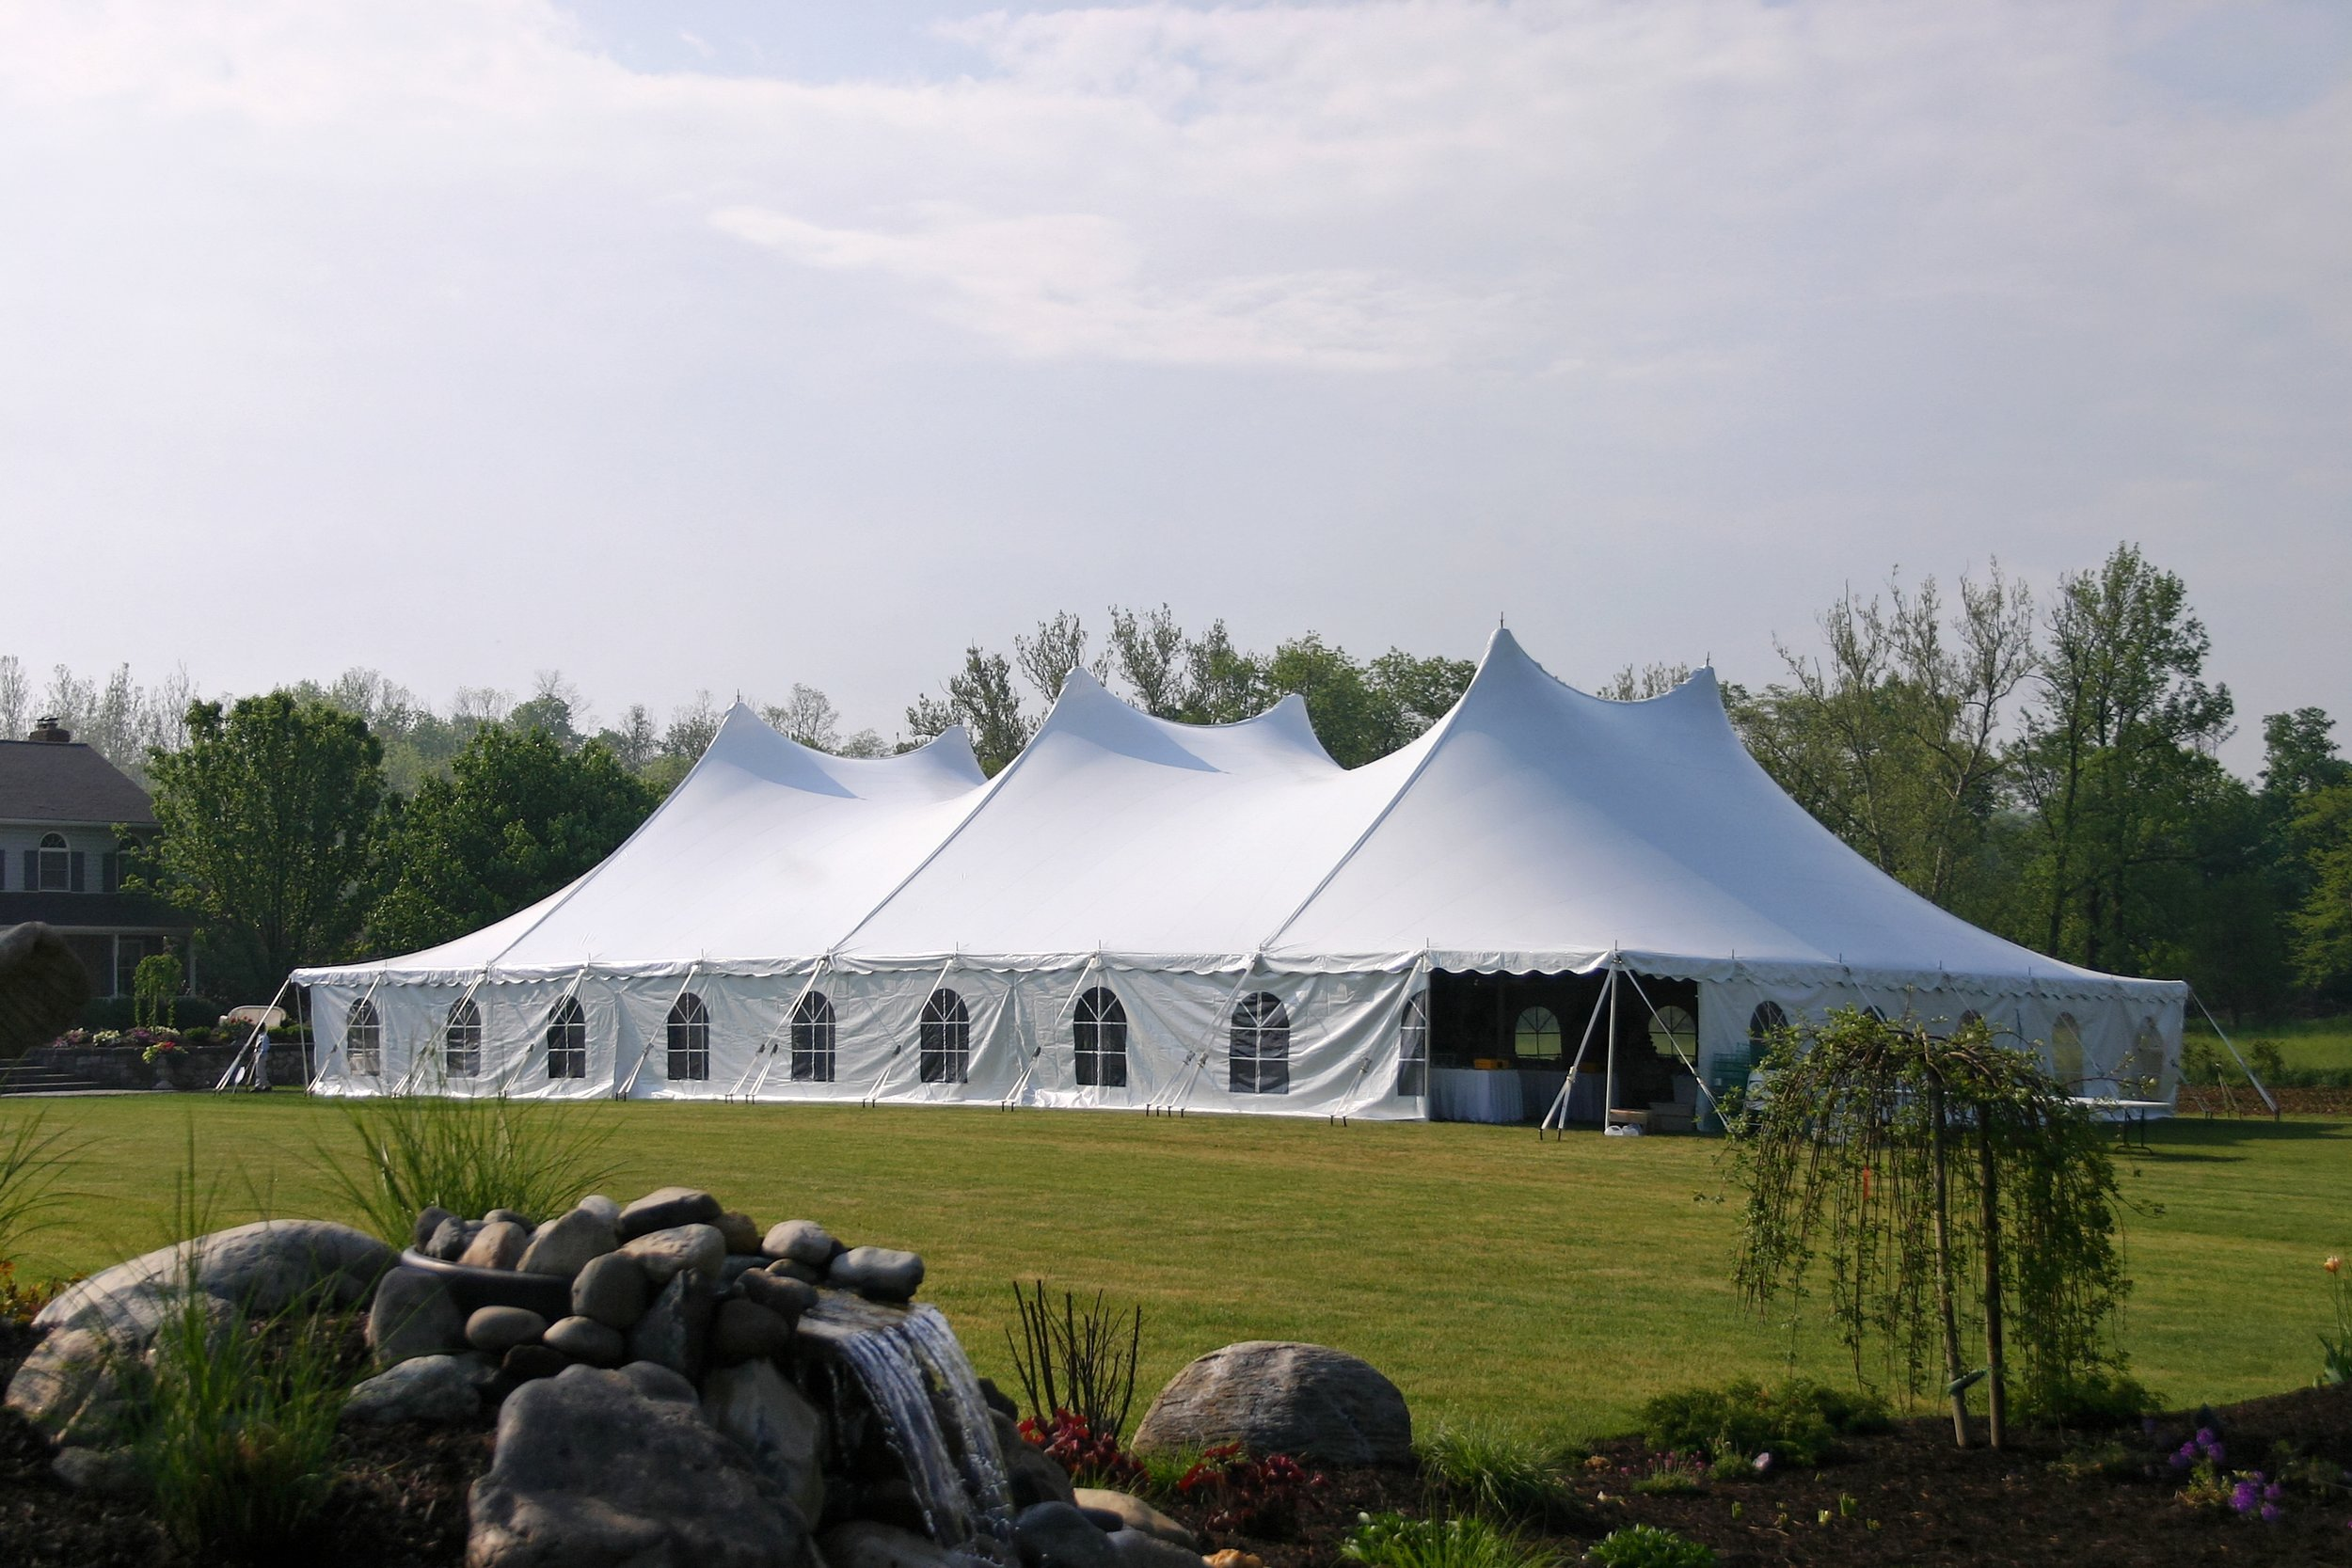 Vineland, NJ Tent-60x100-white-Tents-For-Rent-775.jpg